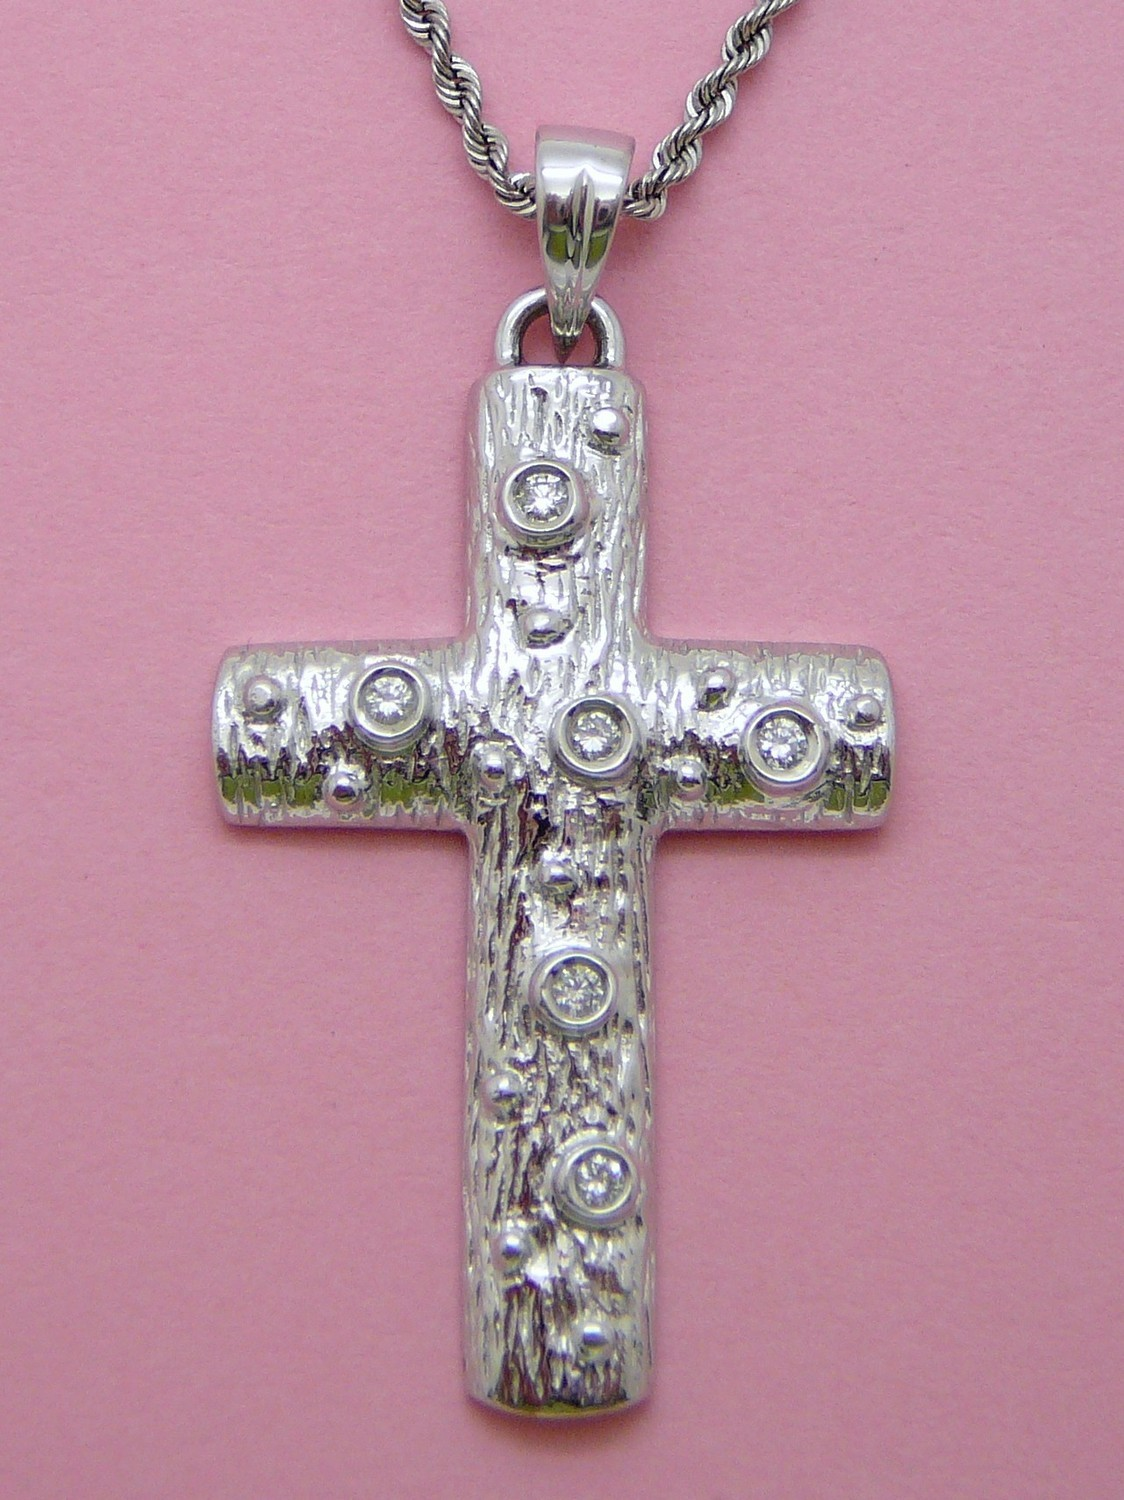 WOOD LOOK CROSS W/Dia. Chain Sold Separately